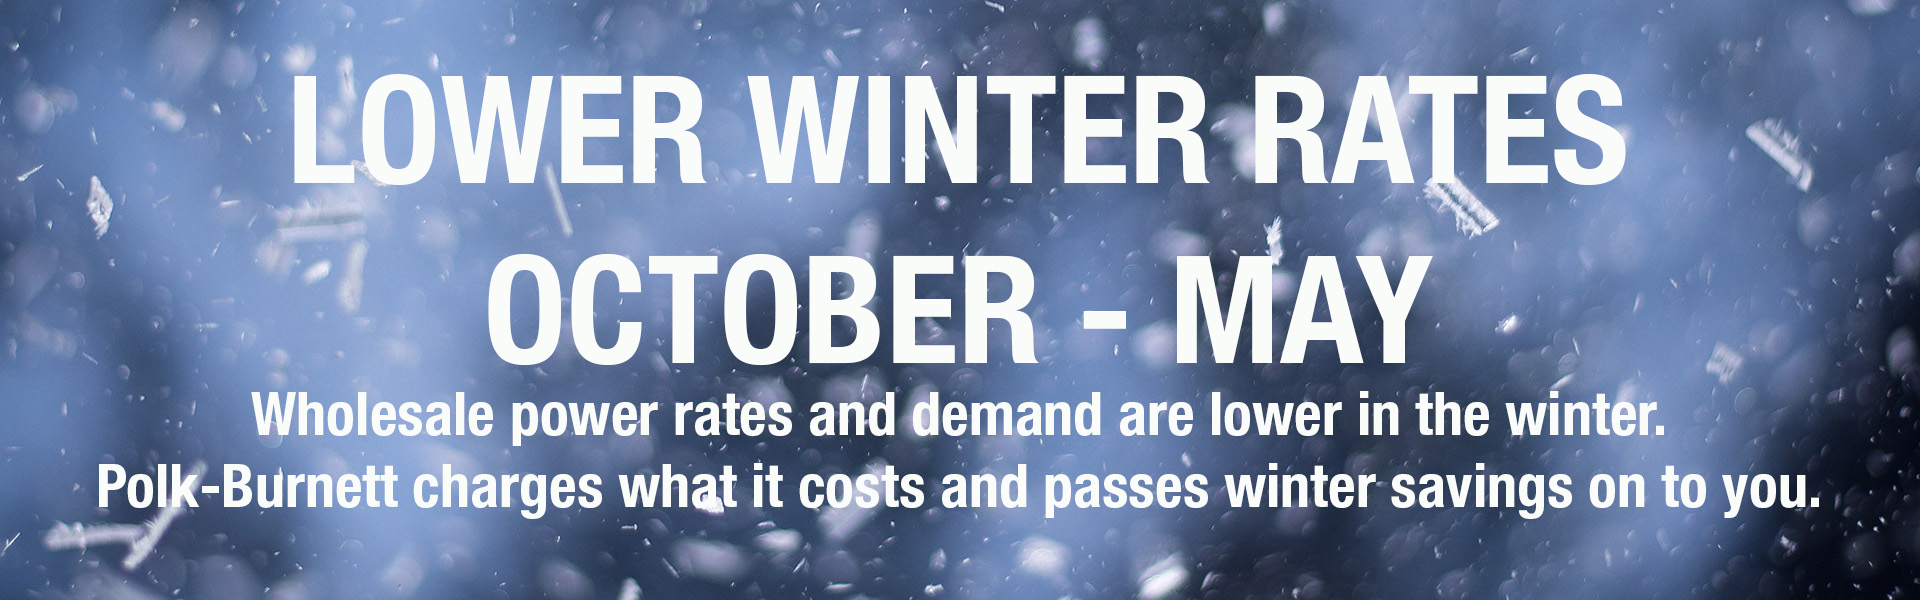 Lower winter rates for co-op members!